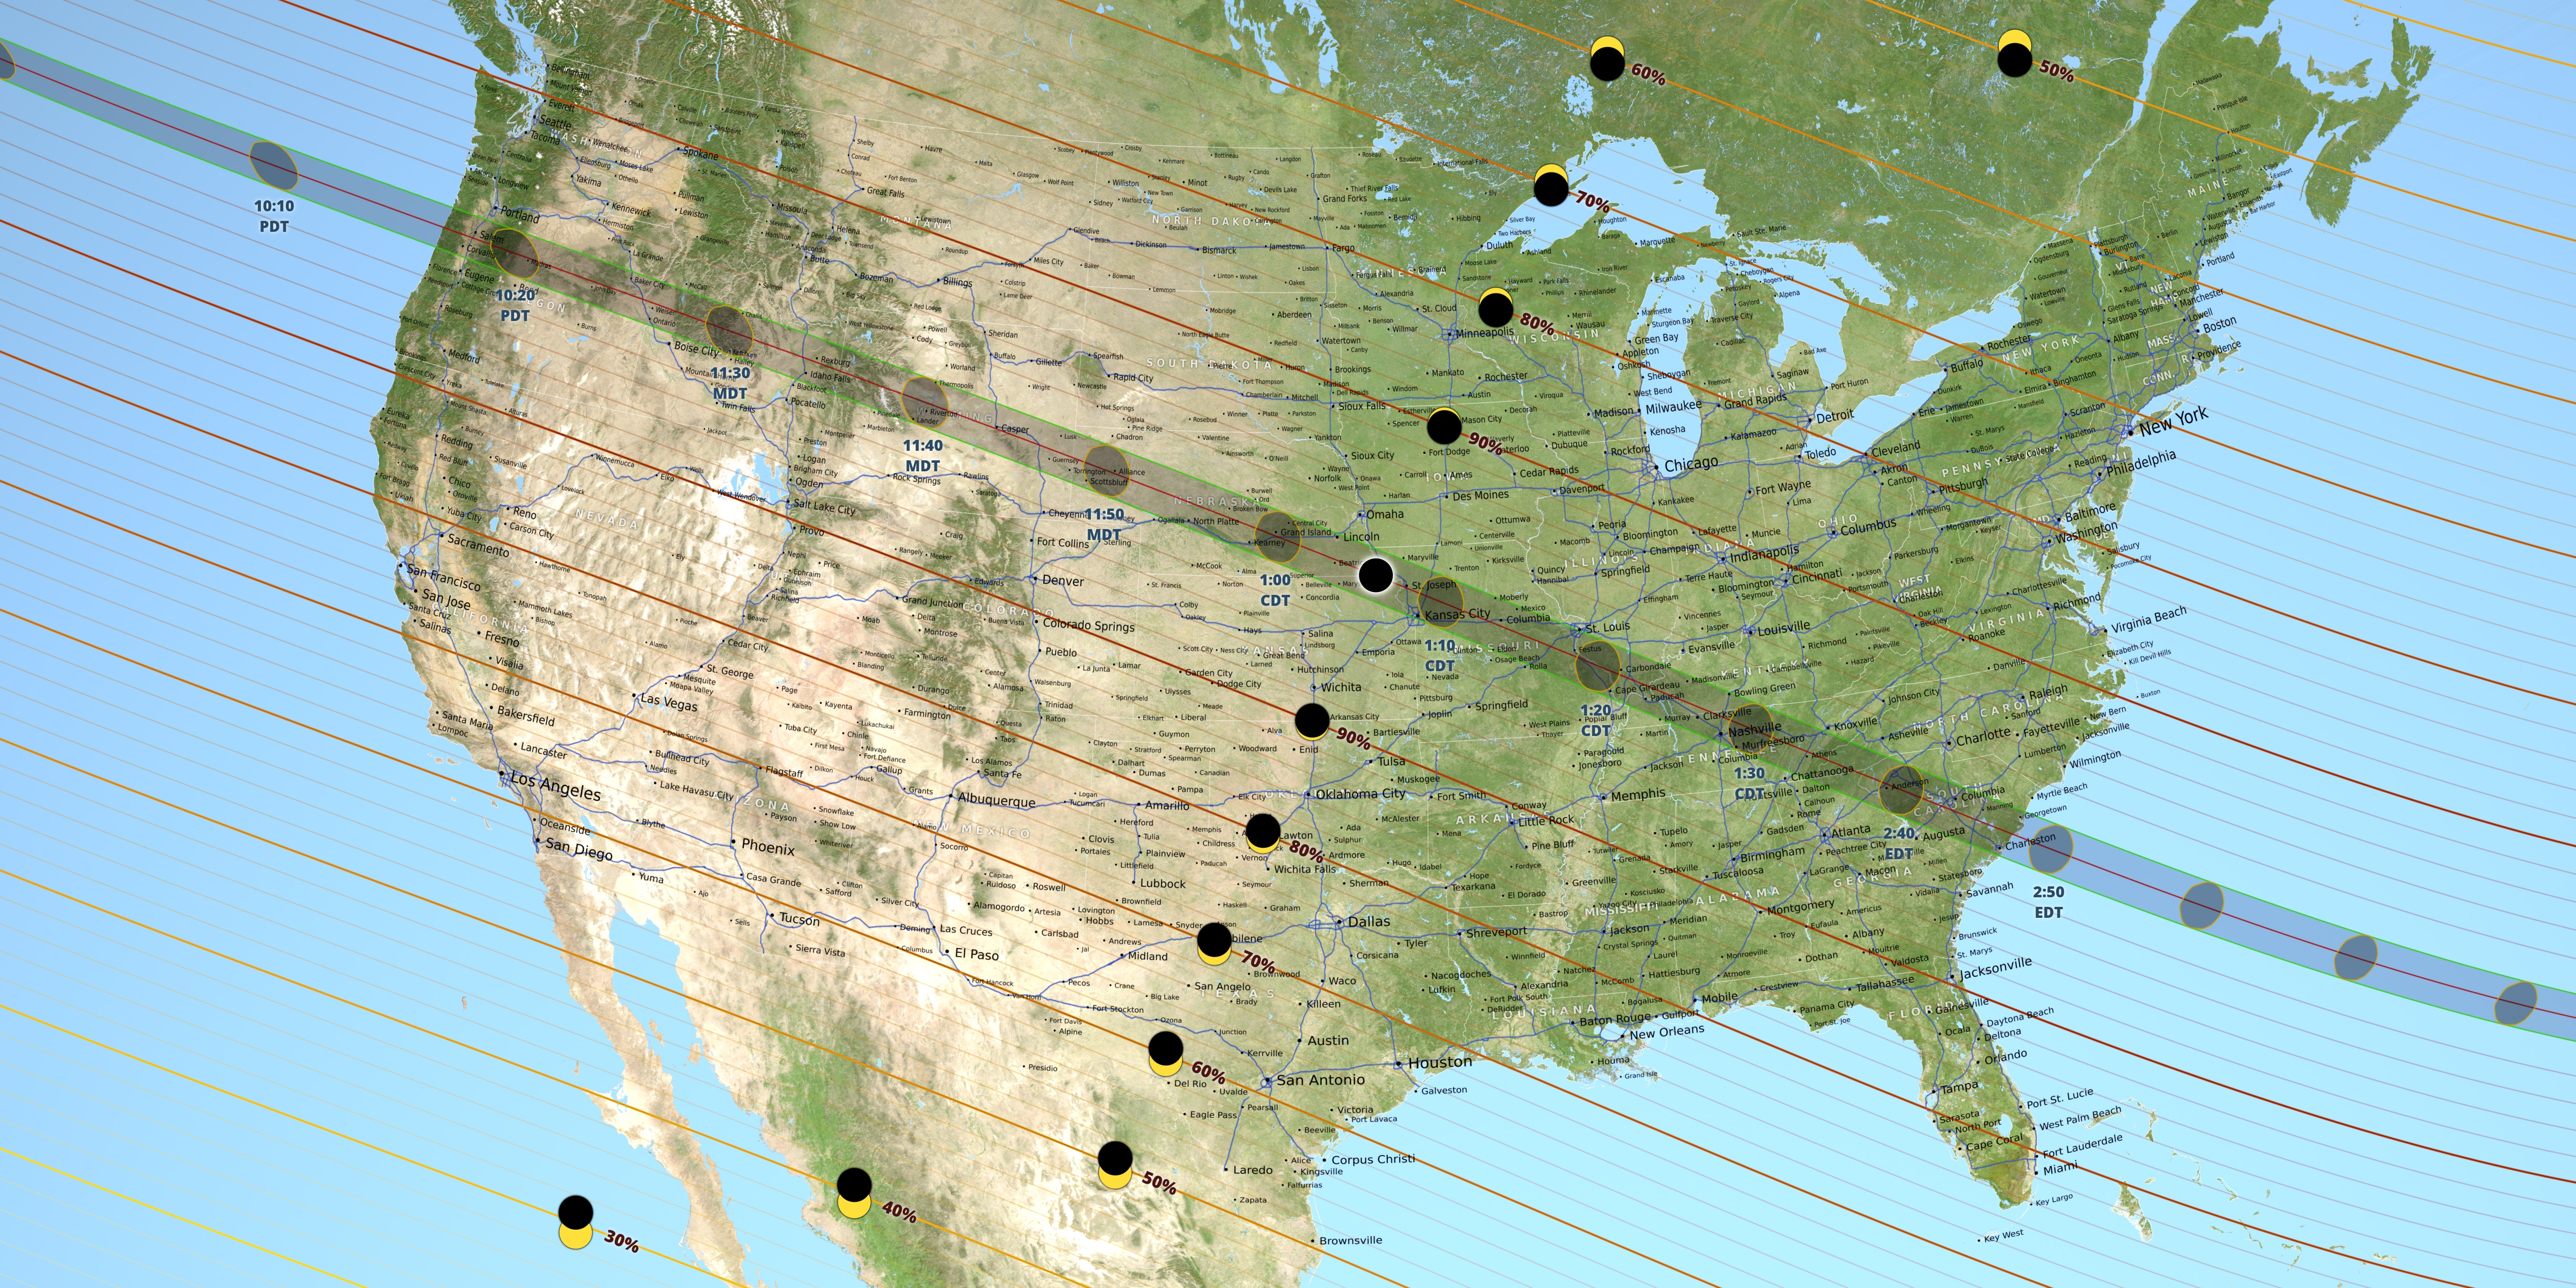 This Nasa Map Of The United States Shows The Path Of Totality For The August 21